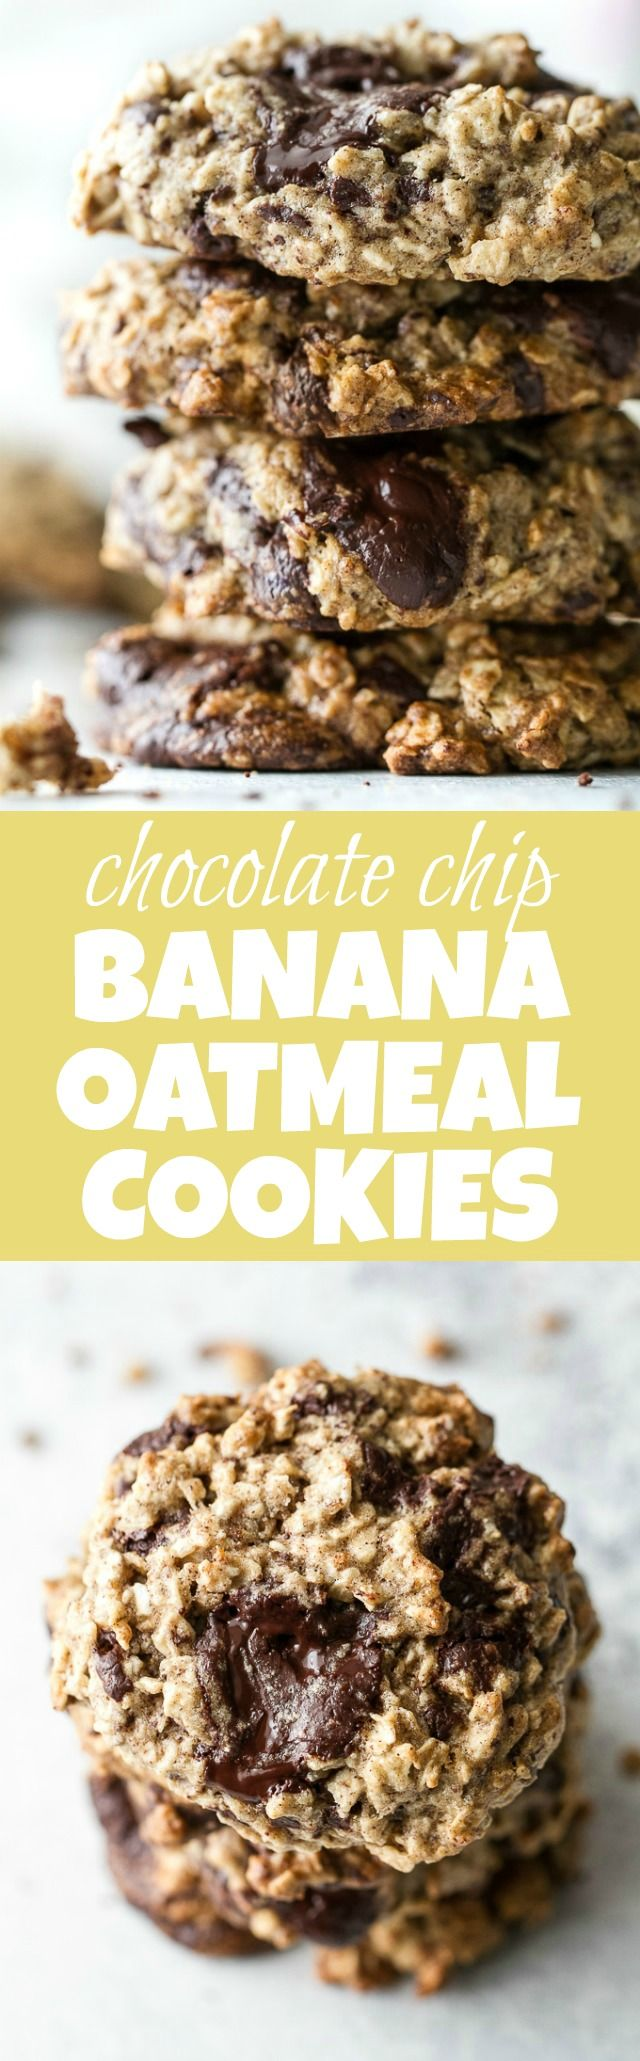 Chocolate chip banana oatmeal cookies made with healthy ingredients and loaded with plenty of chocolate and oats! They're gluten-free, vegan, and make a perfect snack for any time of the day! | runningwithspoons.com